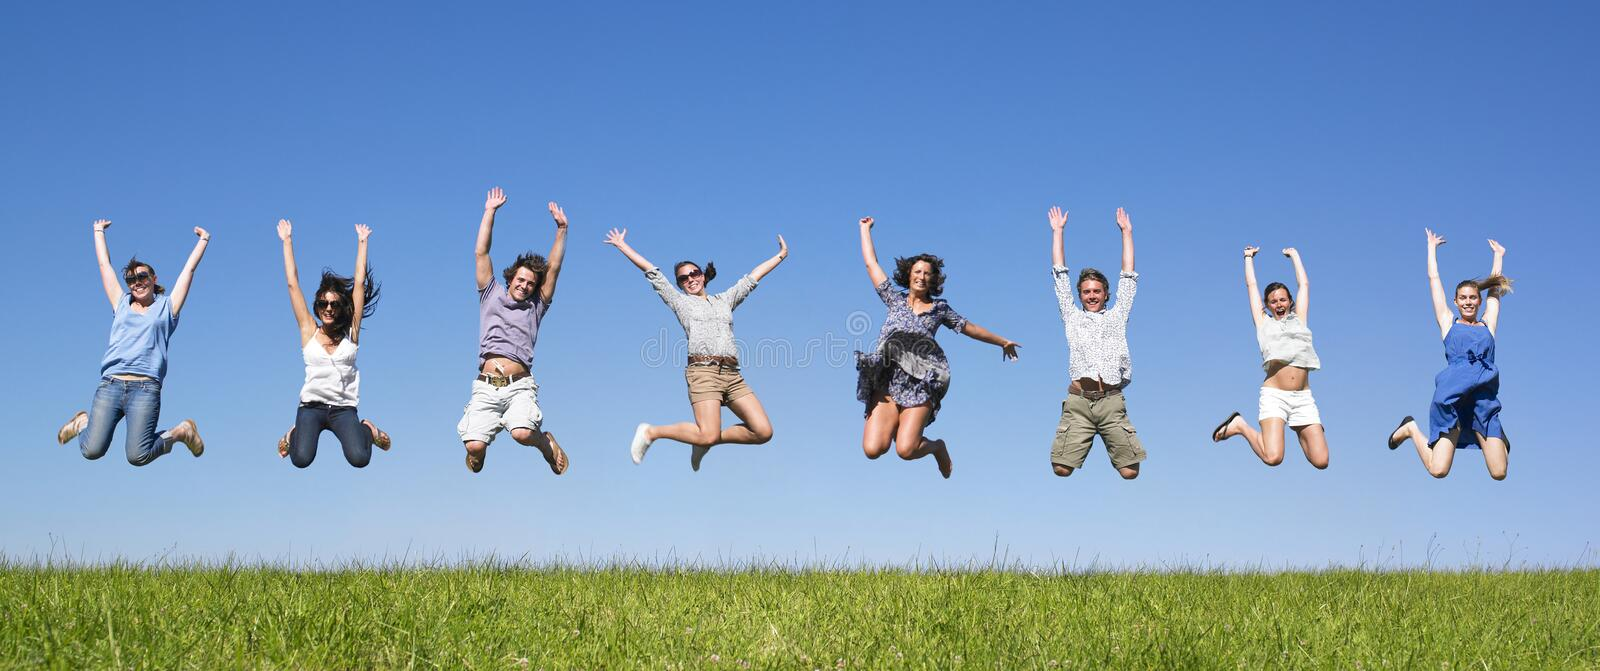 Download Group jumping stock photo. Image of friendship, happy - 11181740